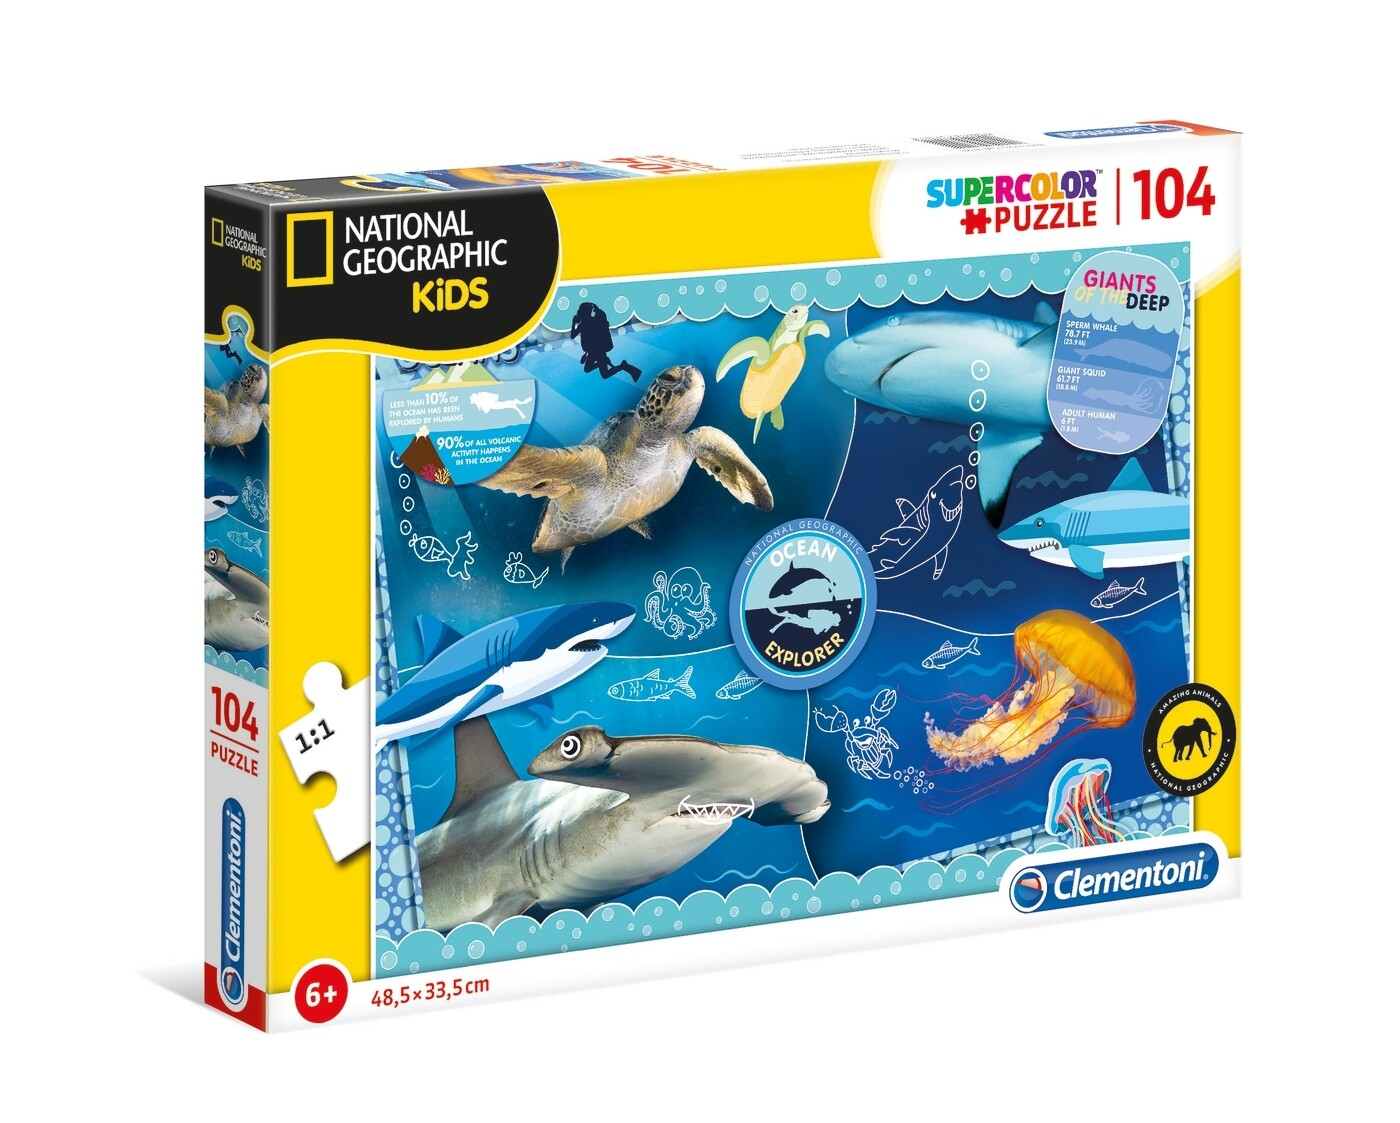 PUZZLE Super 104pcs National Geographic - Oceanos - CLEMENTONI